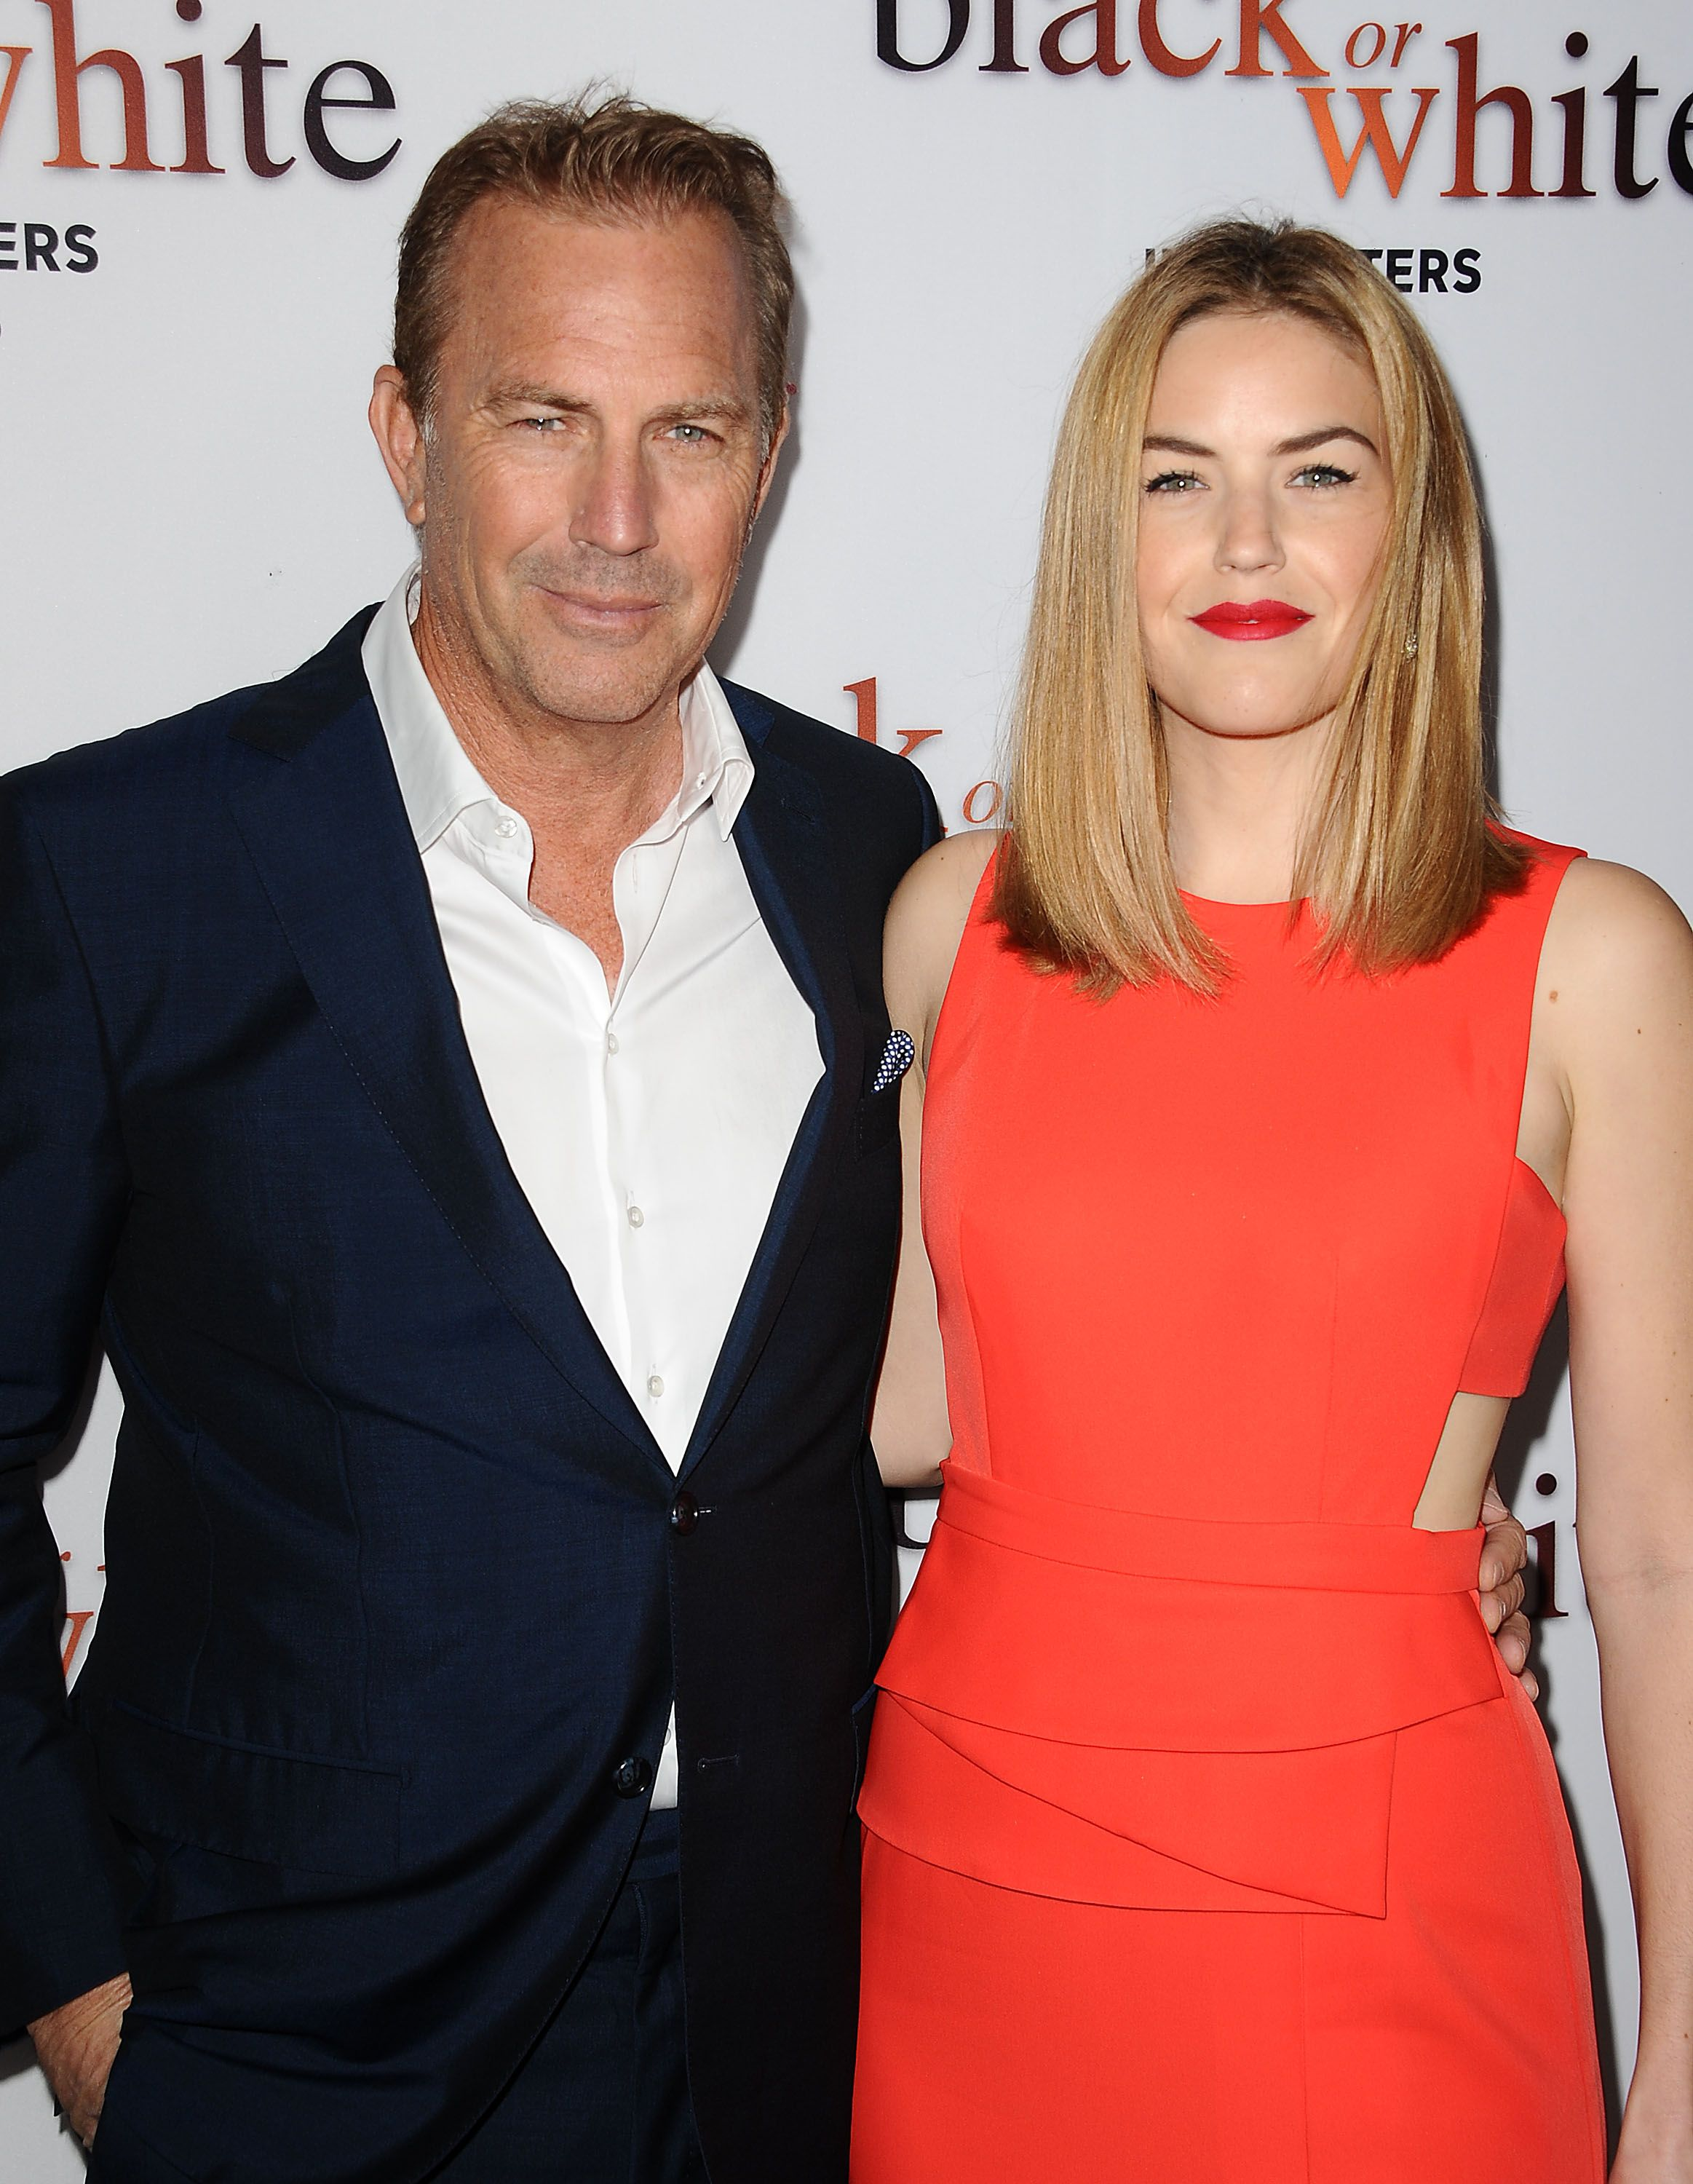 Kevin Costner's youngest daughter, Lily, is an actress herself and held the award show honor in 2004.